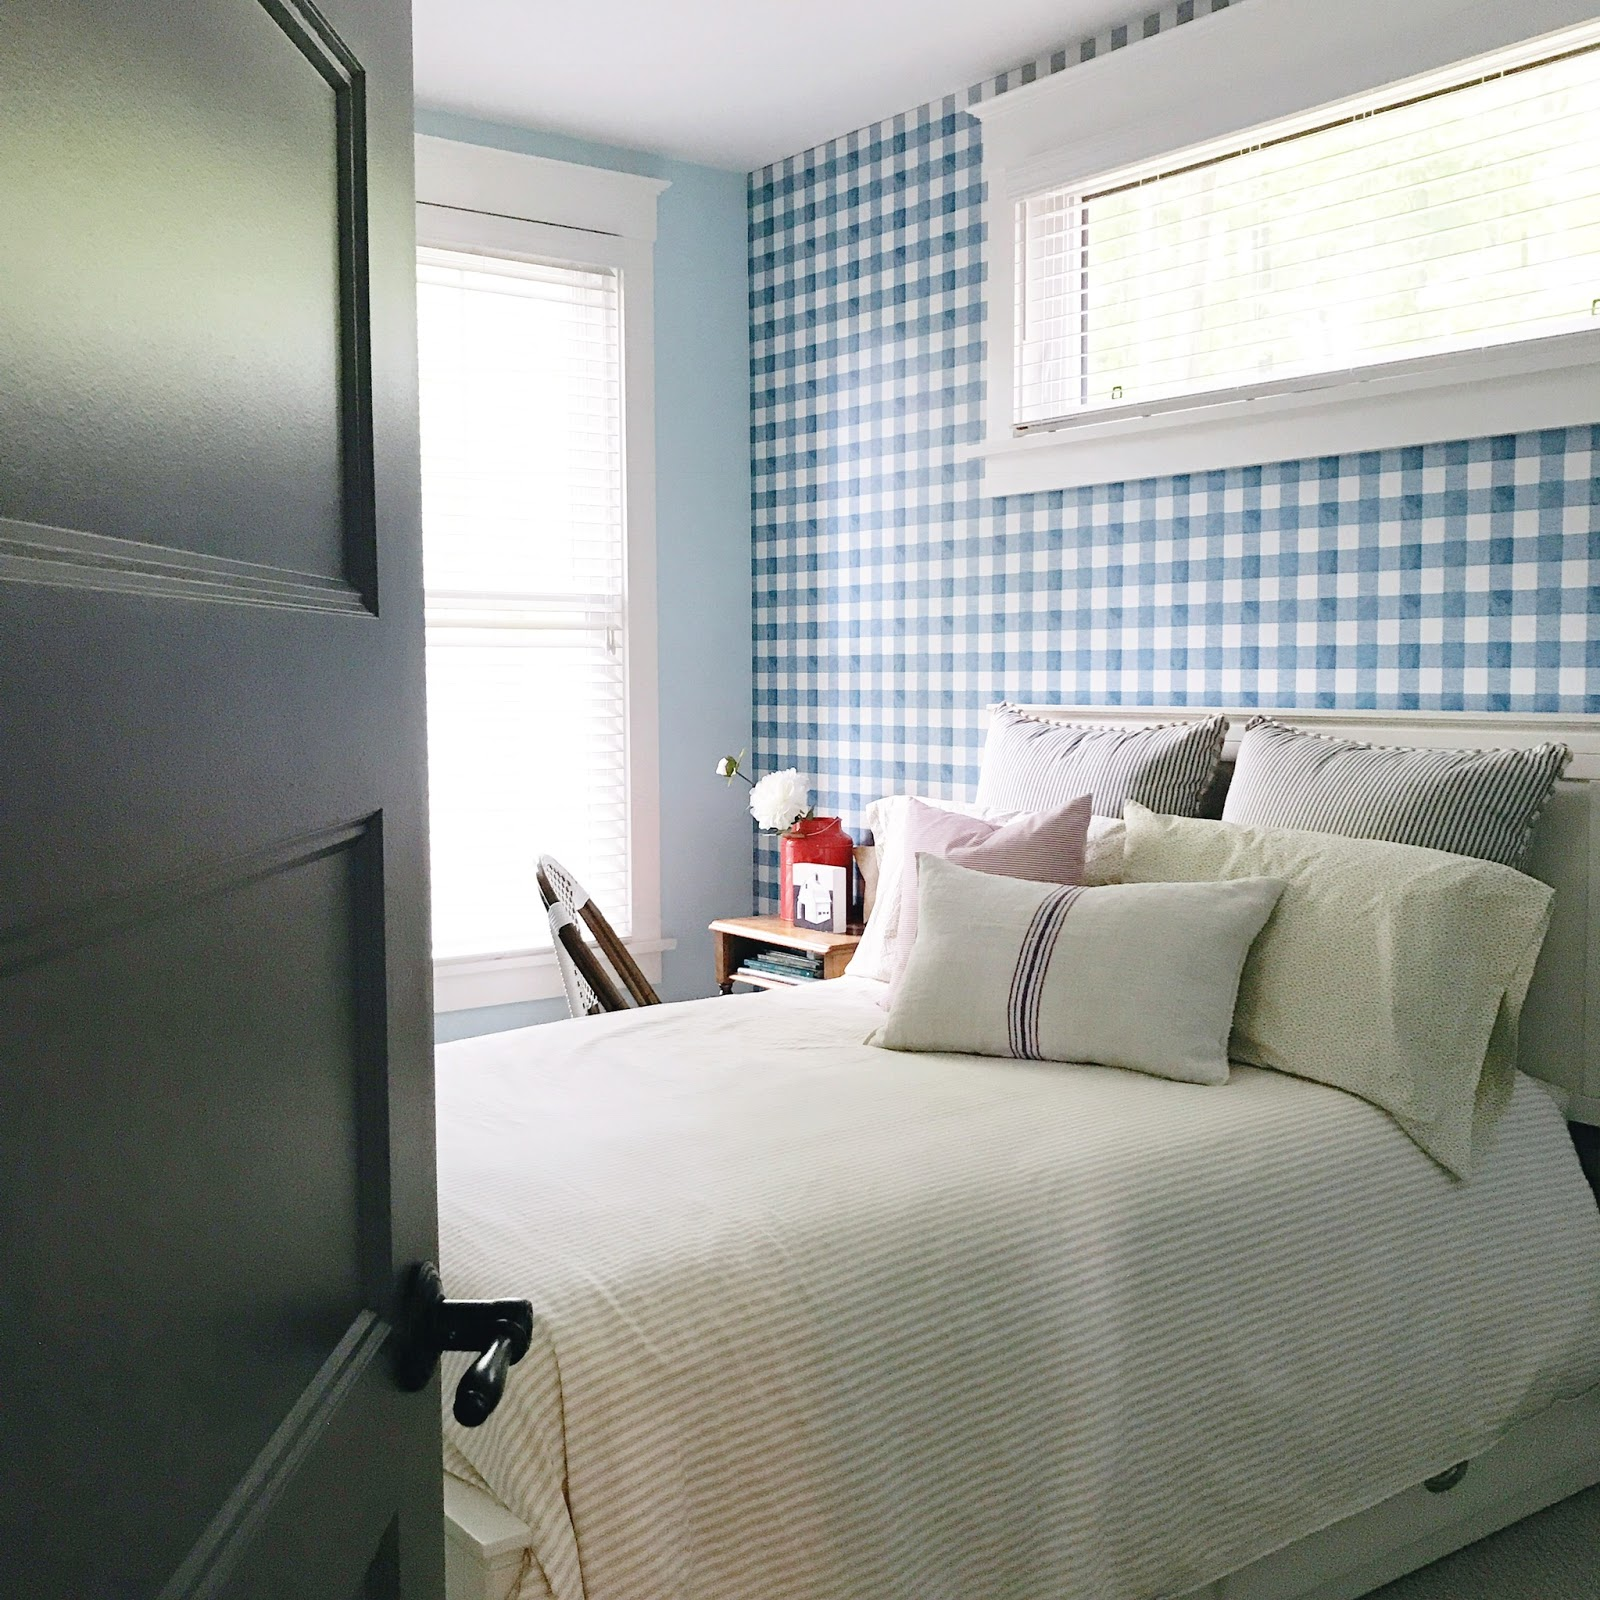 large scale gingham wallpaper, plaid wallpaper, cottage bedroom, modern country bedroom, kids cottage bedroom